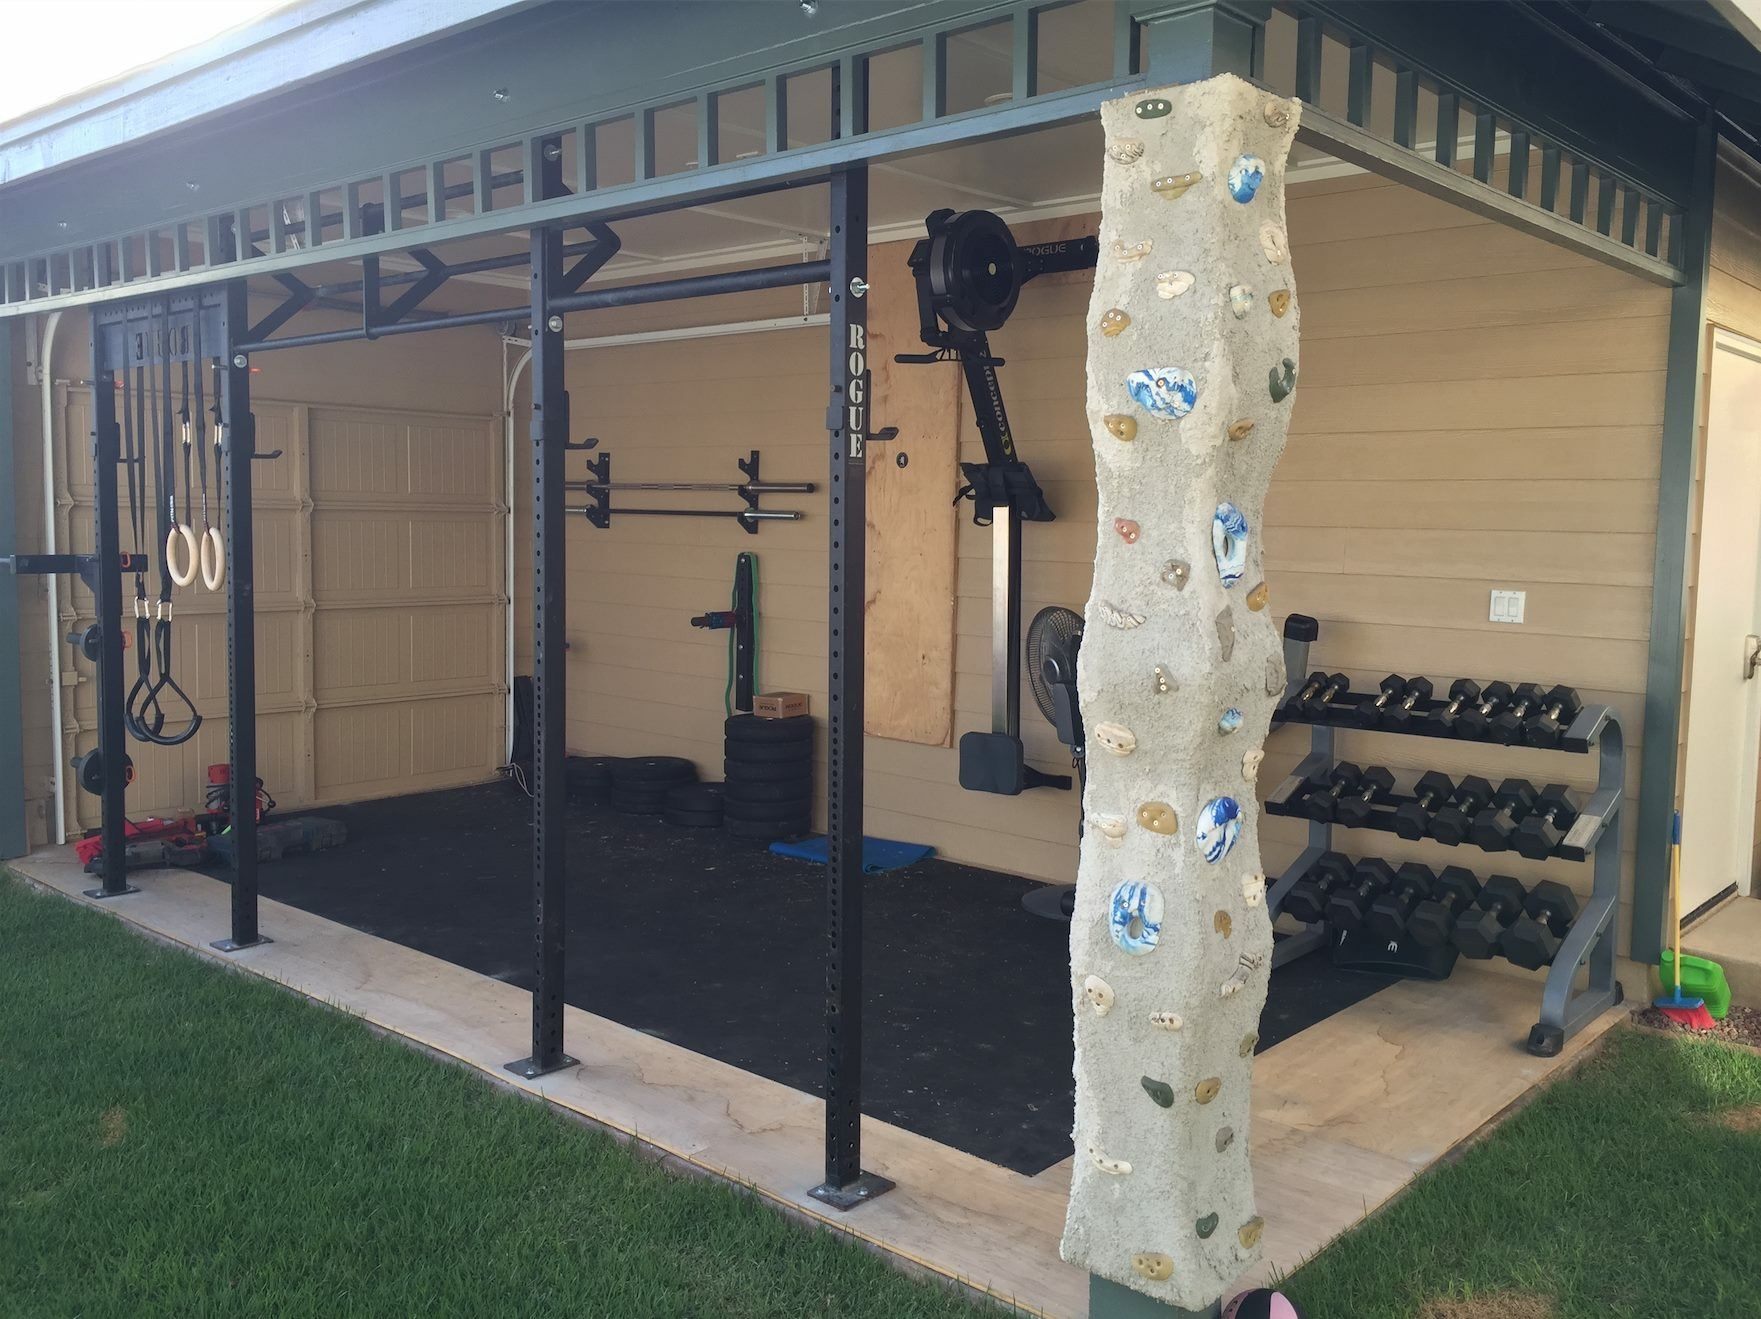 Backyard outdoor gym ideas #crossfit #obstacleracing home gym in